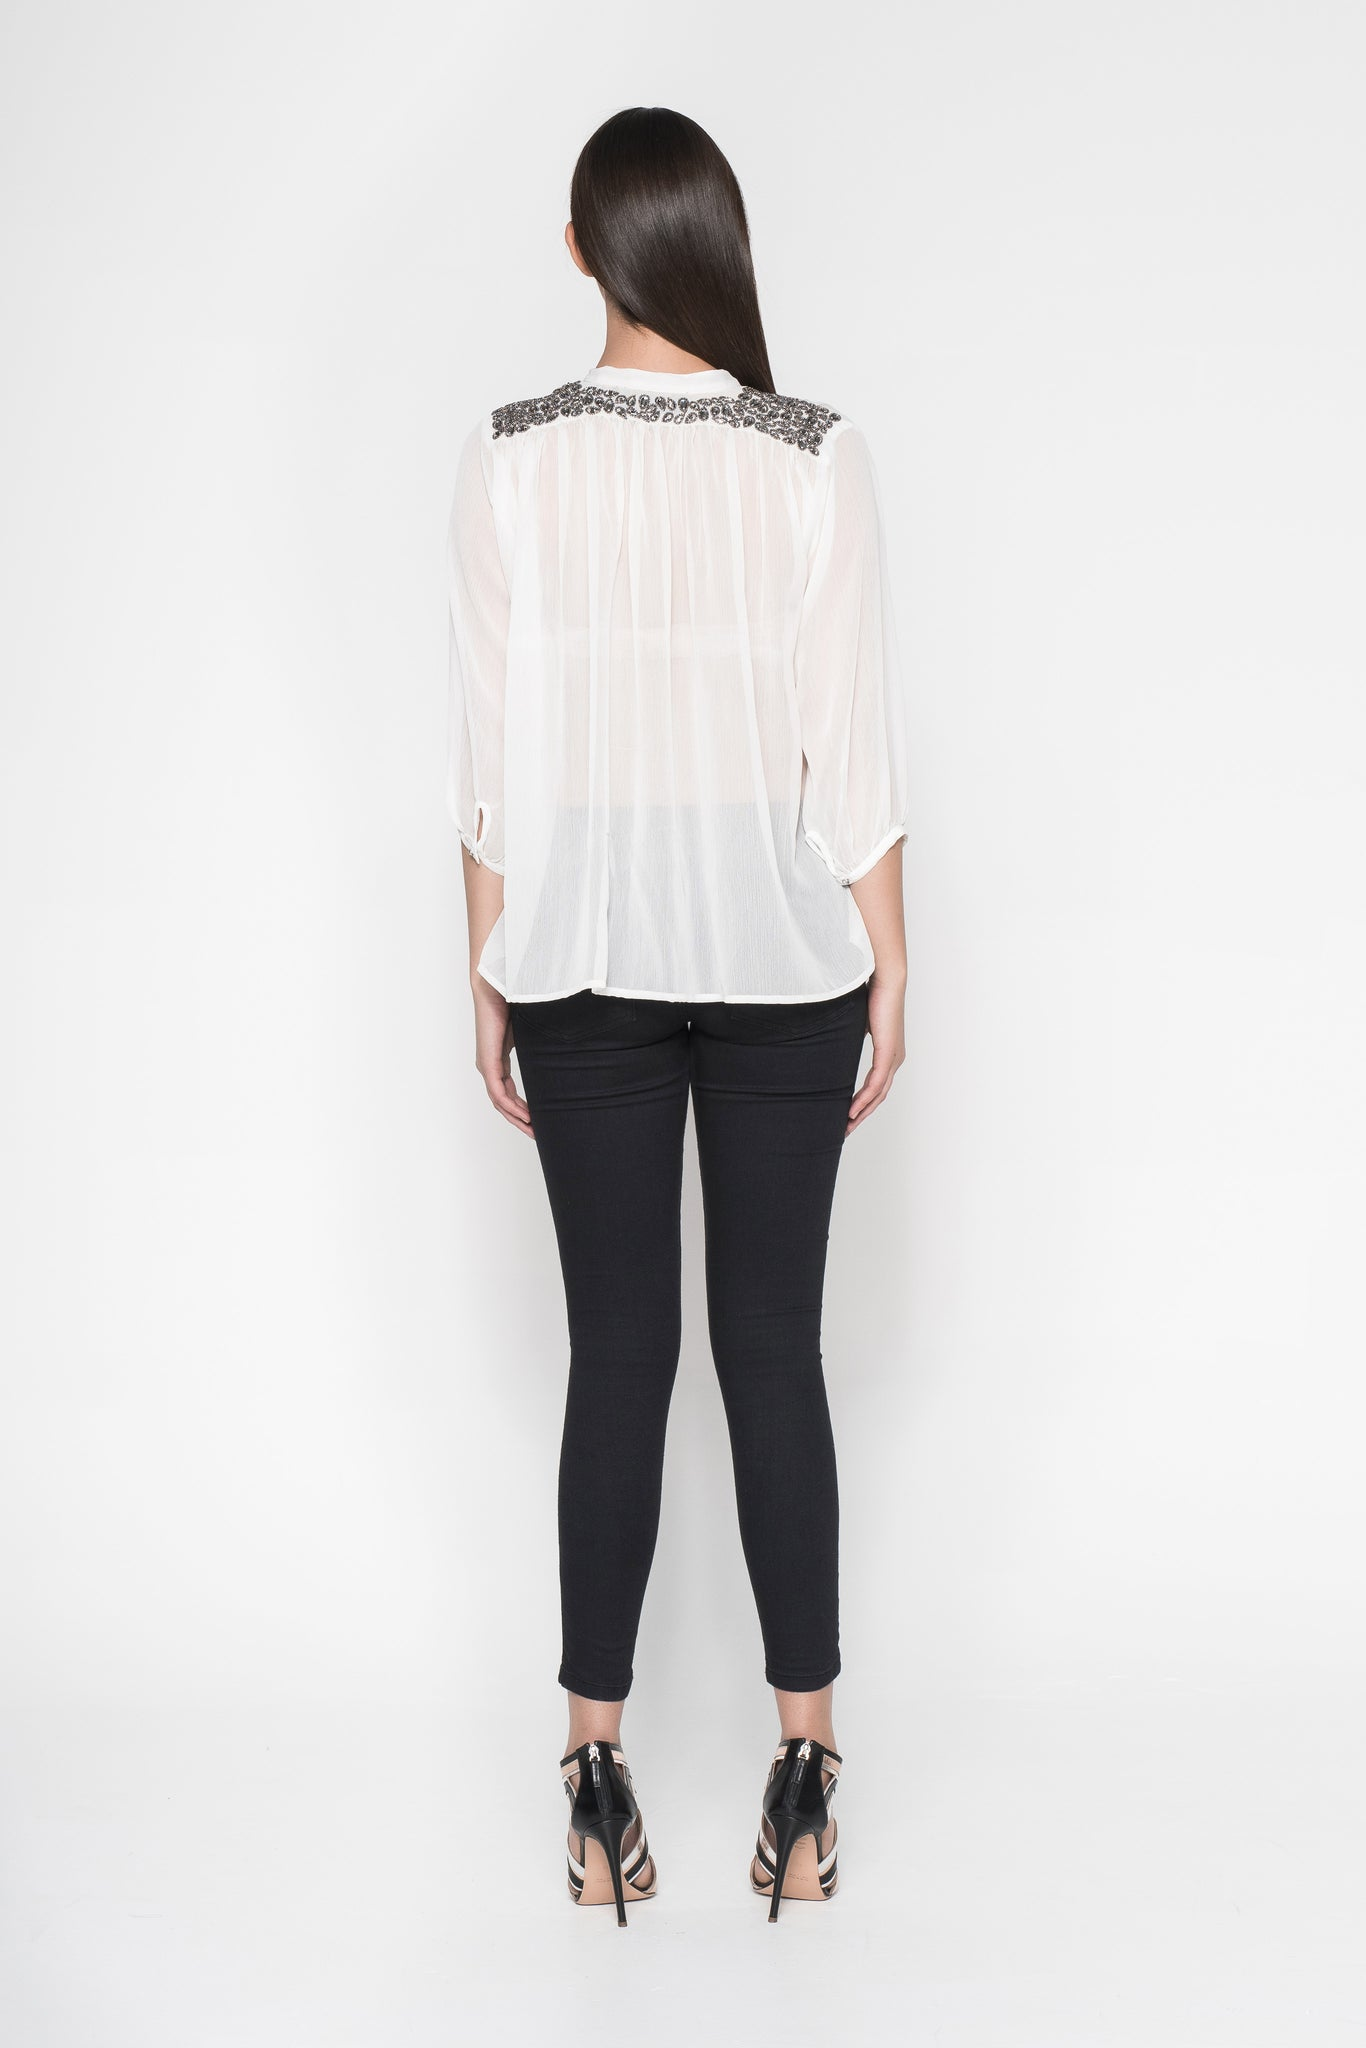 LEAF SHAPED BEADED SHEER SHIRT